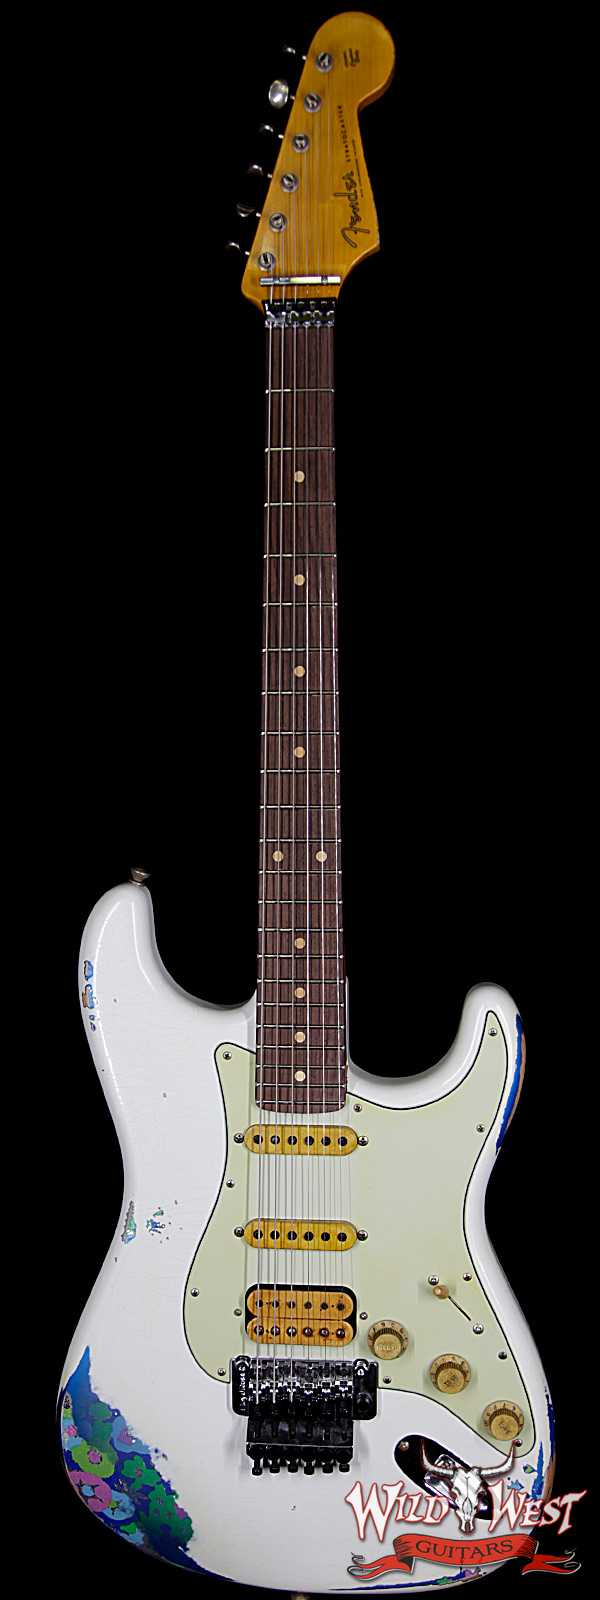 Fender Custom Shop Wild West Exclusive White Lightning Stratocaster HSS Floyd Rose Heavy Relic Rosewood Board 22 Frets Blue Flower